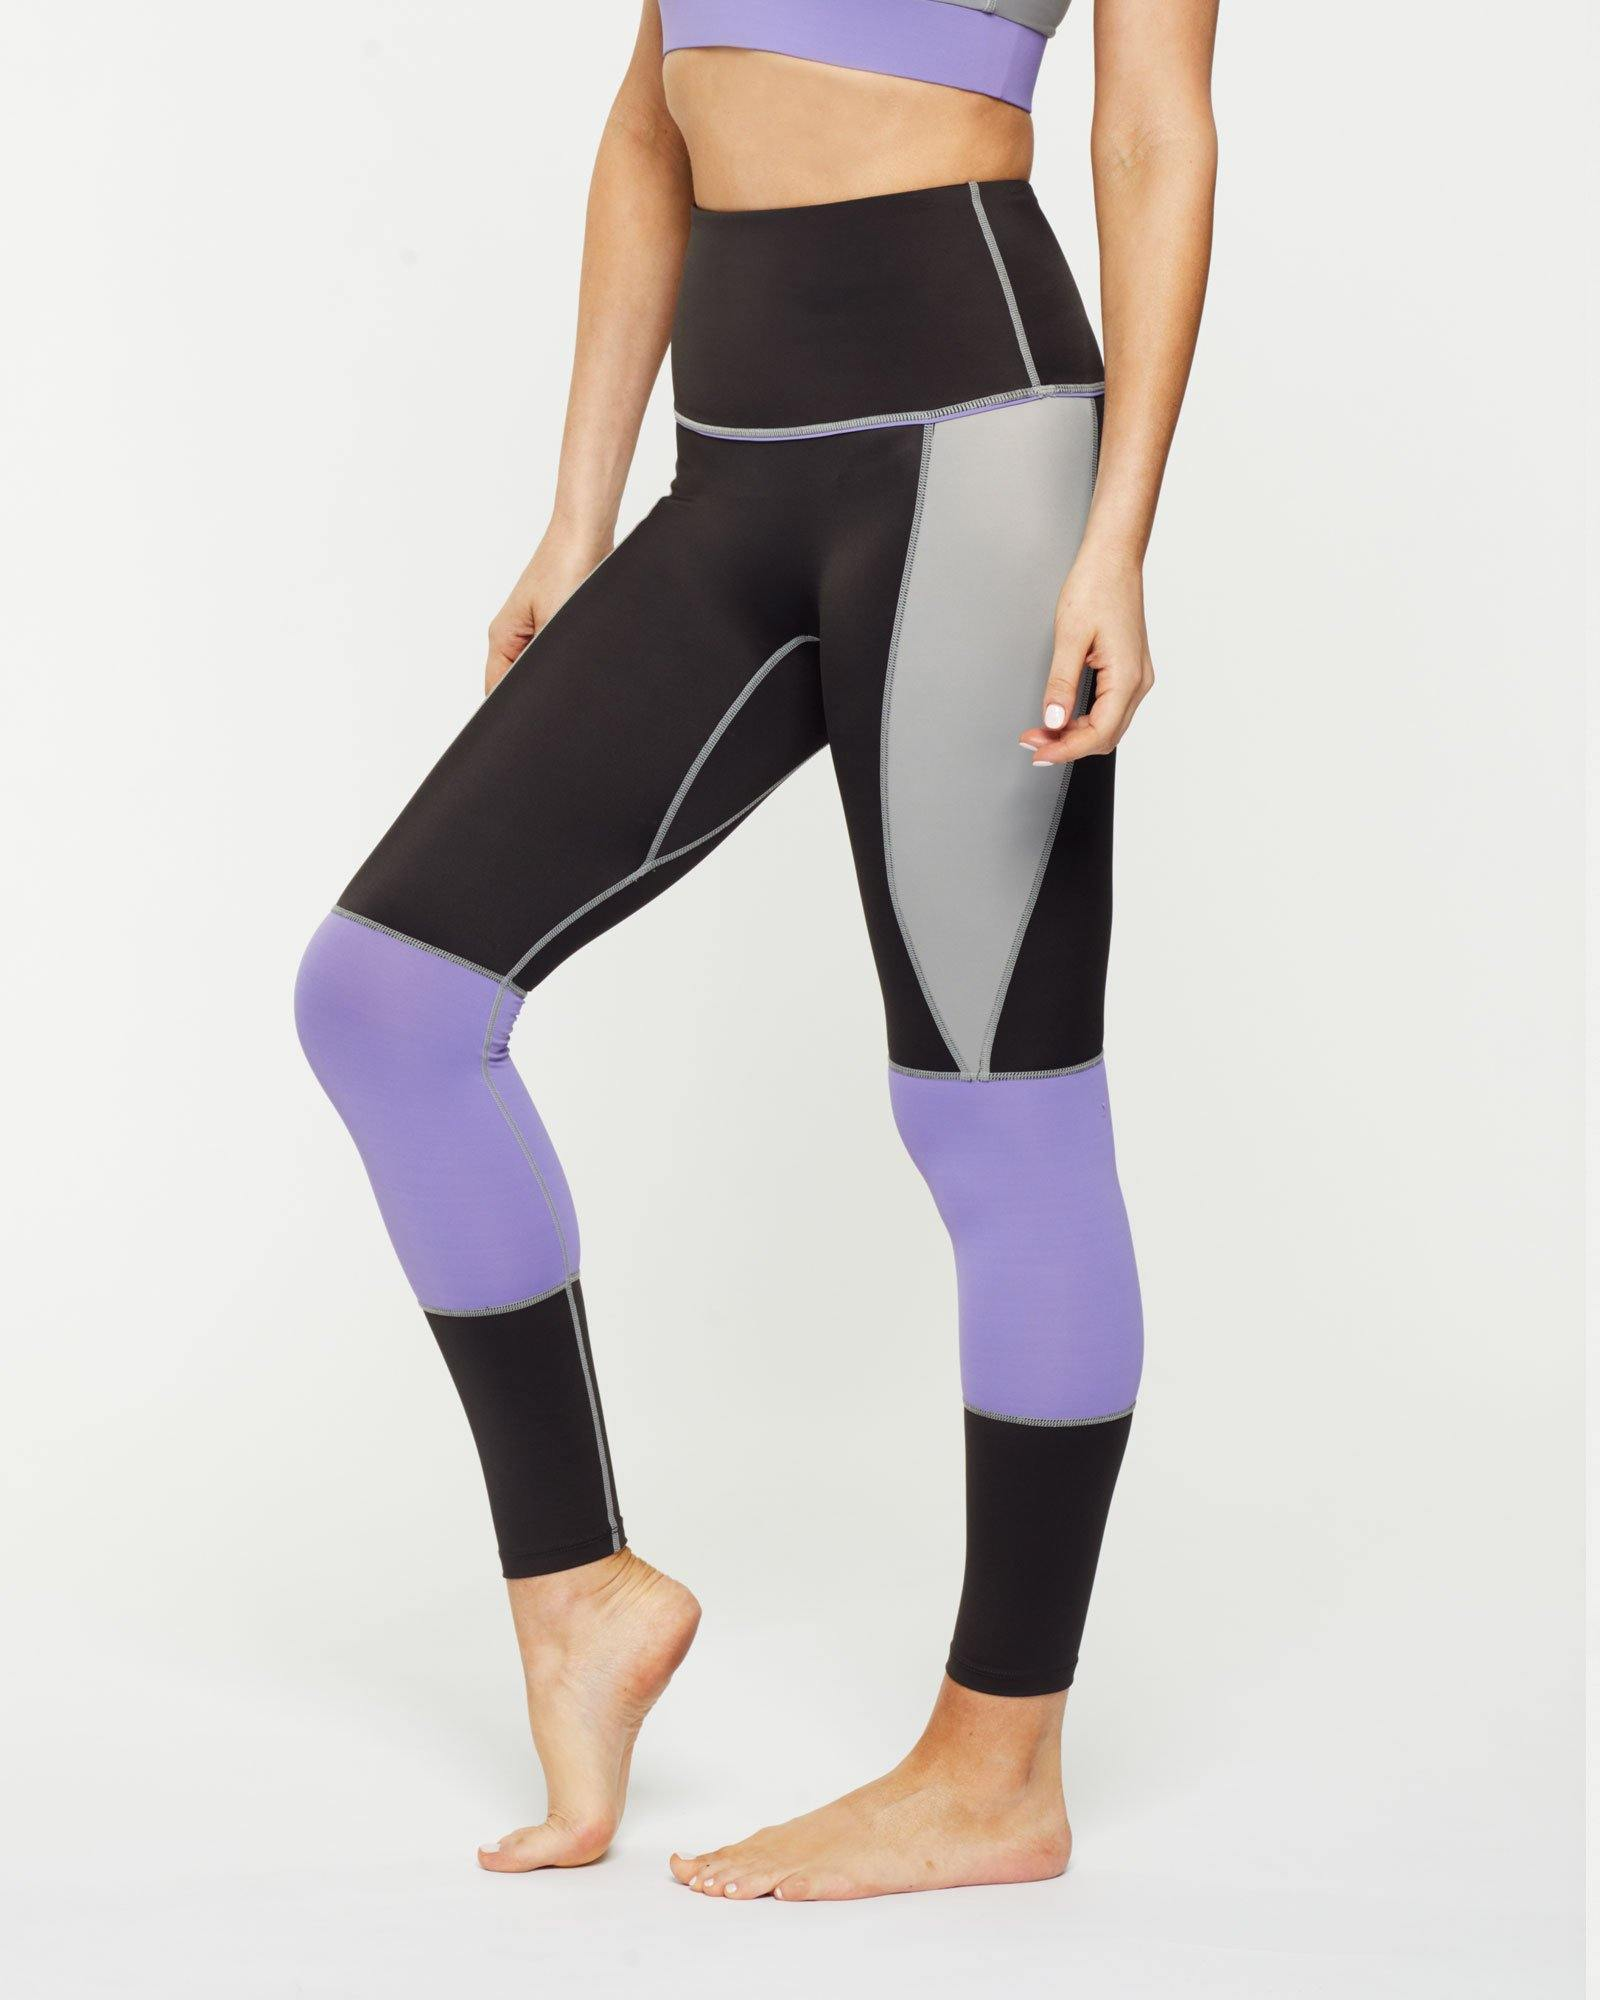 Steely GRACILIS 7/8 HIGH WAISTED LEGGING LIQUORICE GREY WITH CONTRAST PANELS, SIDE VIEW